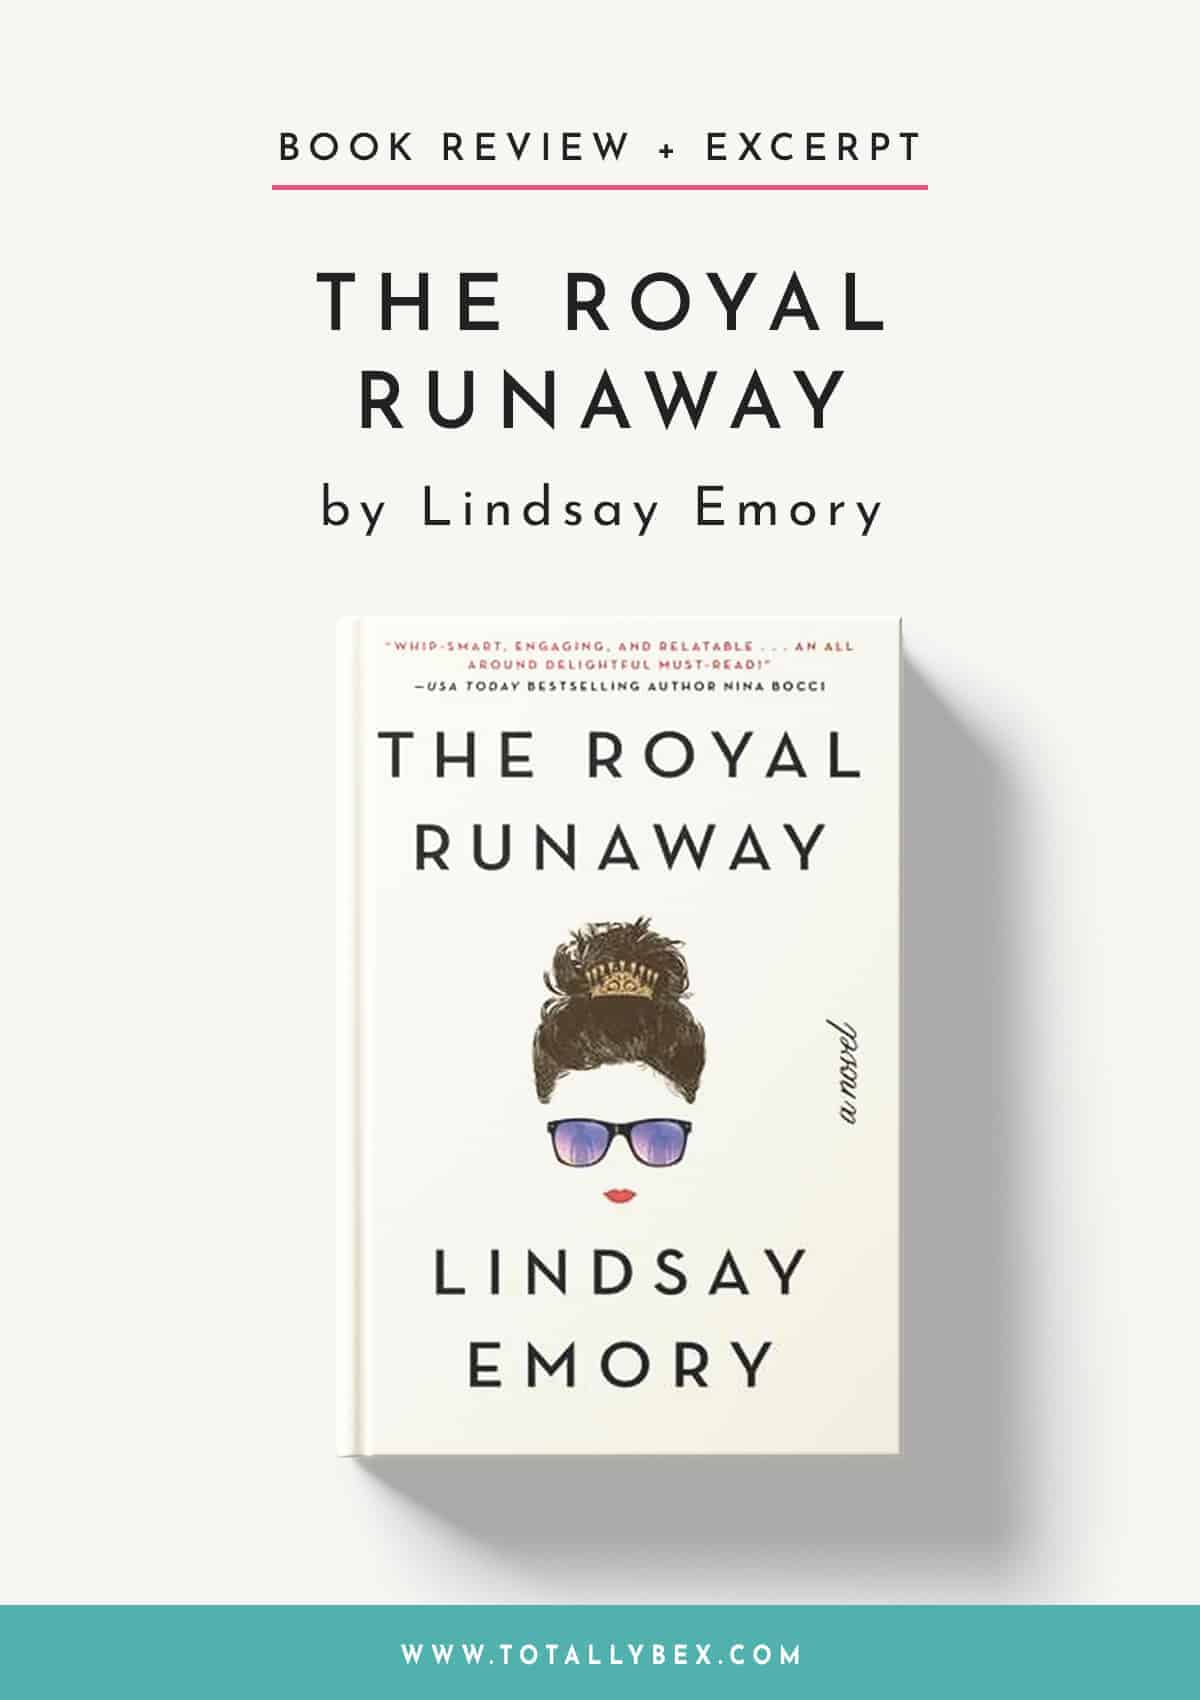 The Royal Runaway by Lindsay Emory-Book Review